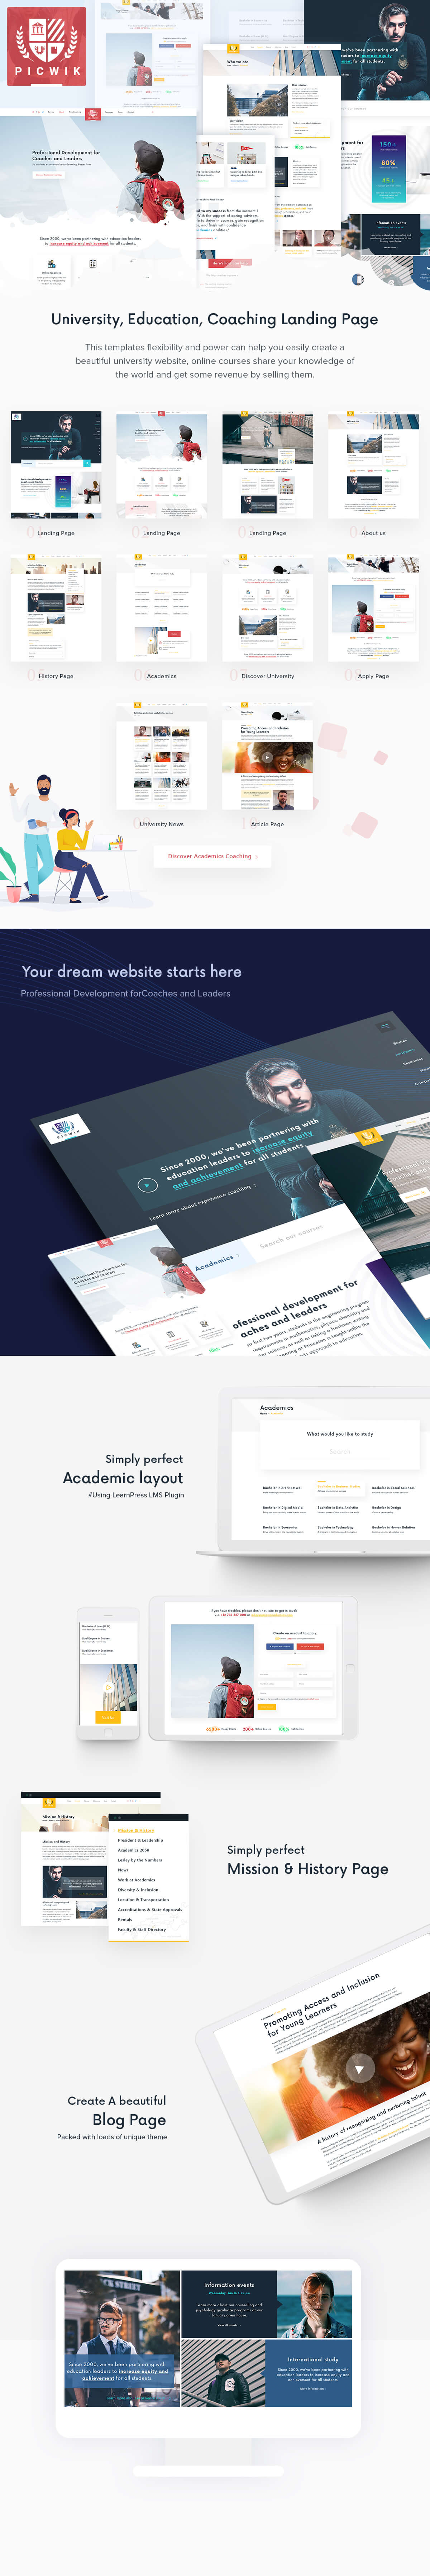 Picwik - University, Education Landing Page